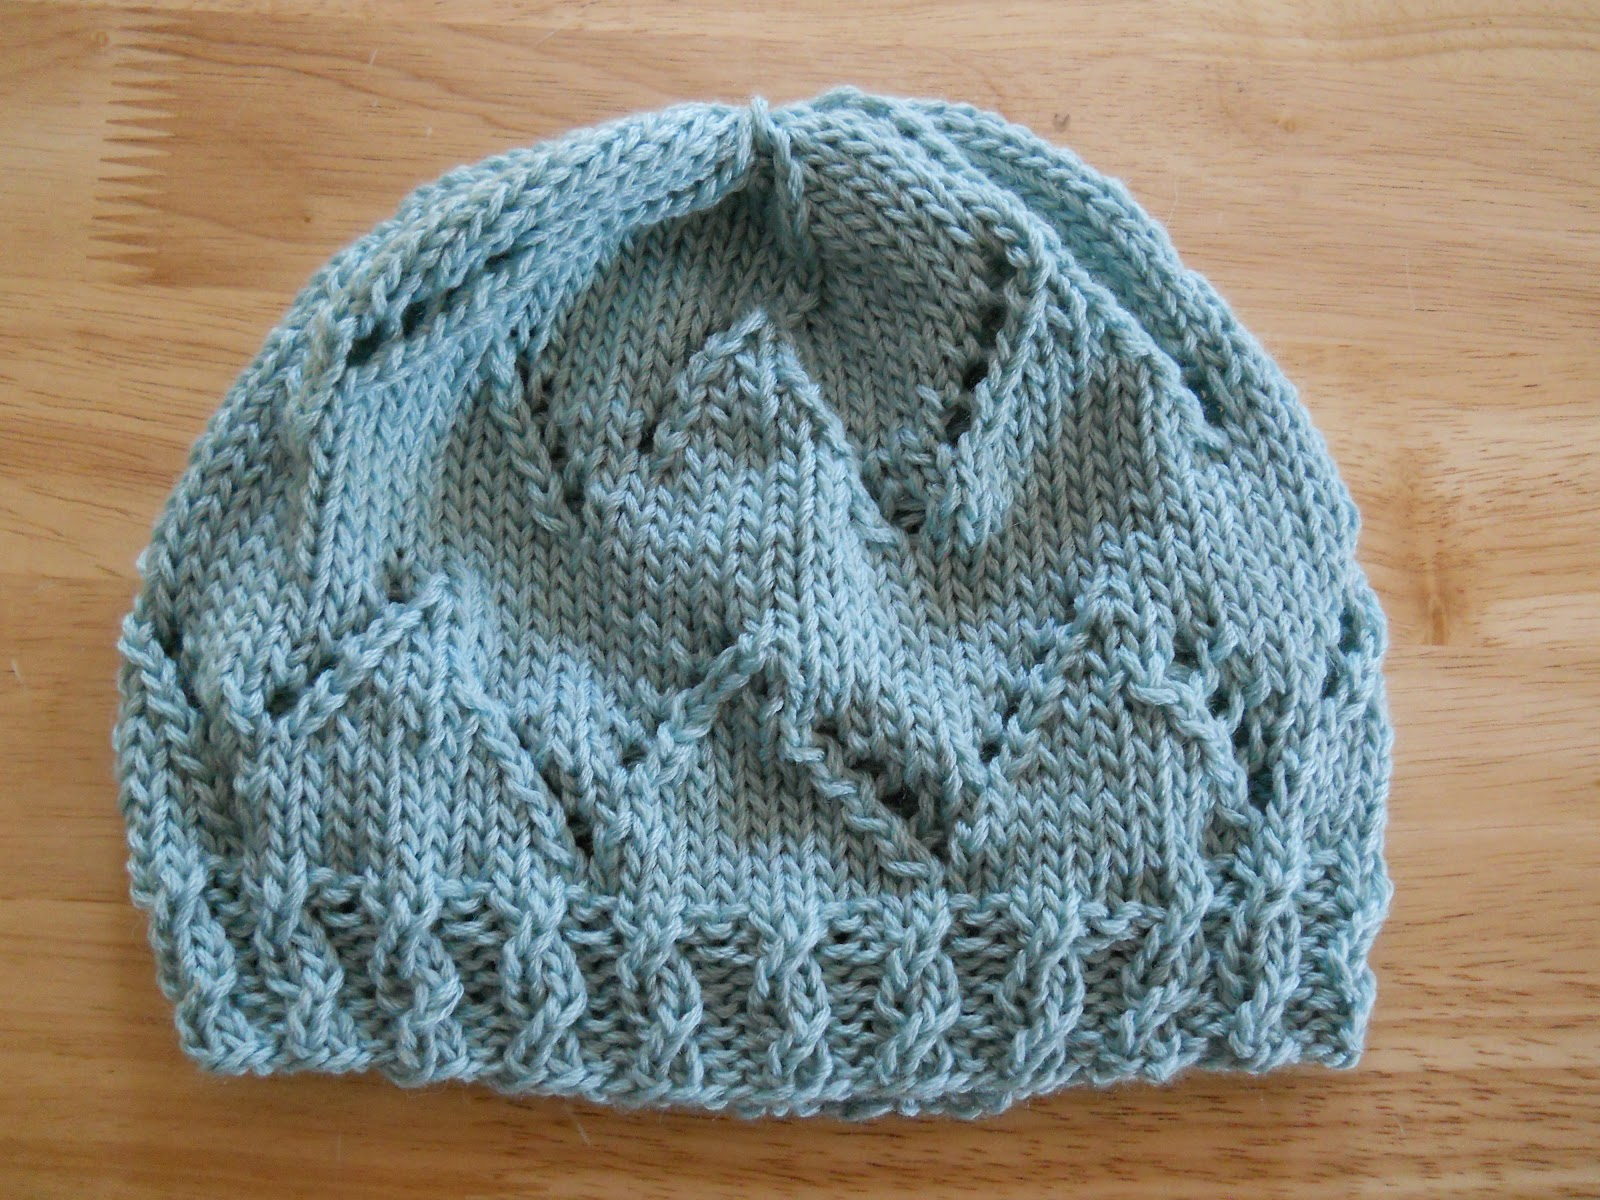 Angel Knitting Pattern Free : Knitting with Schnapps: Introducing The Angel Kisses Cap!